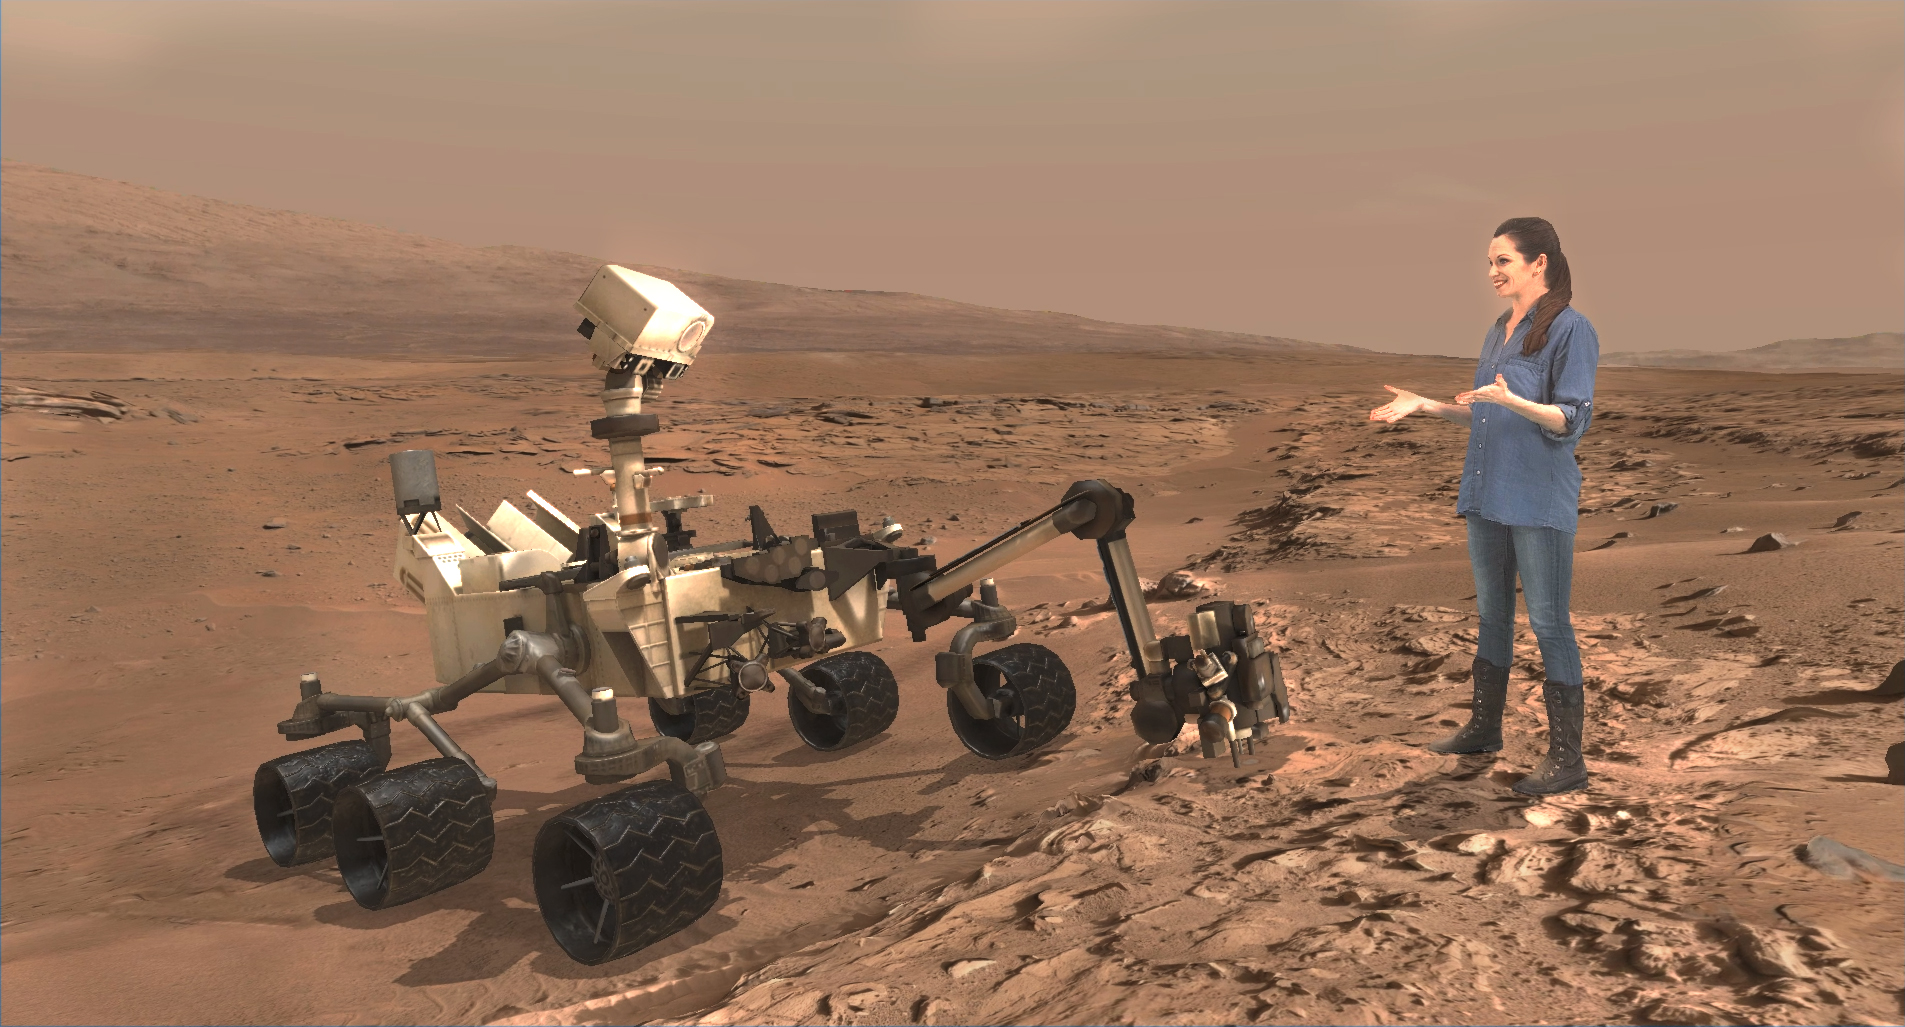 NASA's use of HoloLens puts you on Mars with Buzz Aldrin